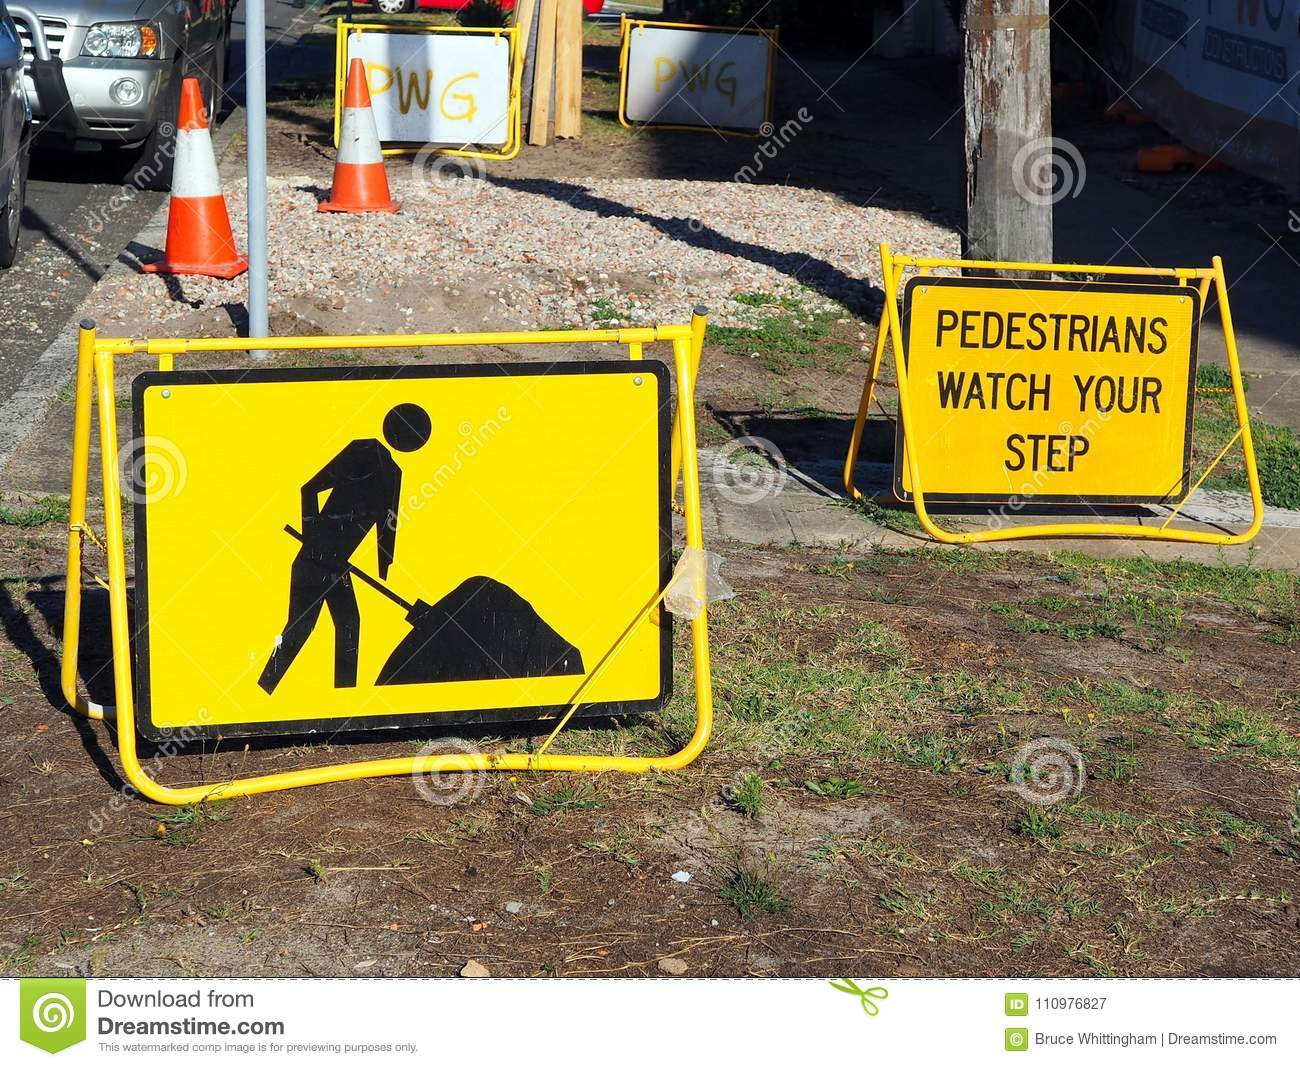 Roadwork Signs, Pedestrians Mind Your Step Stock Image - Image of